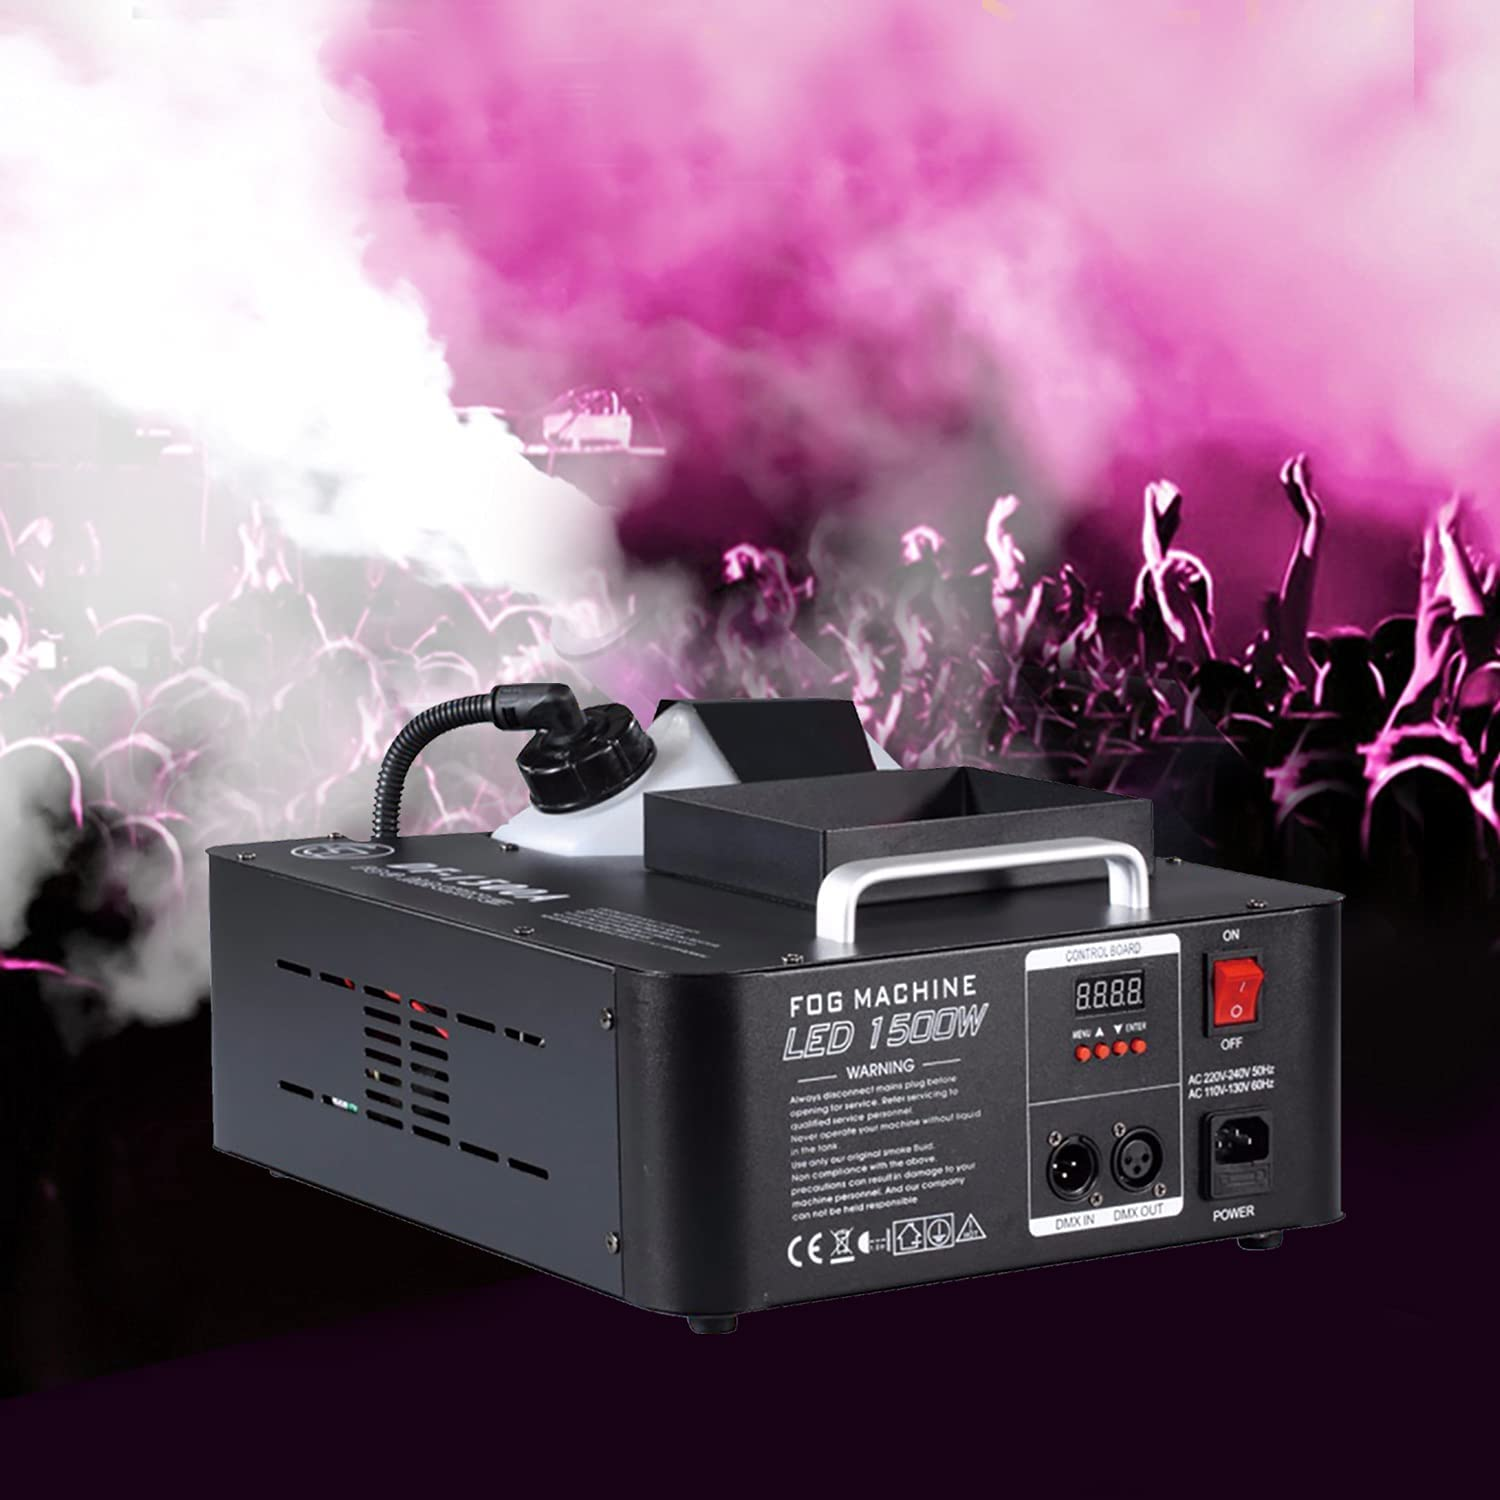 Stage Fog Max 64% OFF Machine Long Beach Mall Led 1700w Color Can Be Or Change Hung